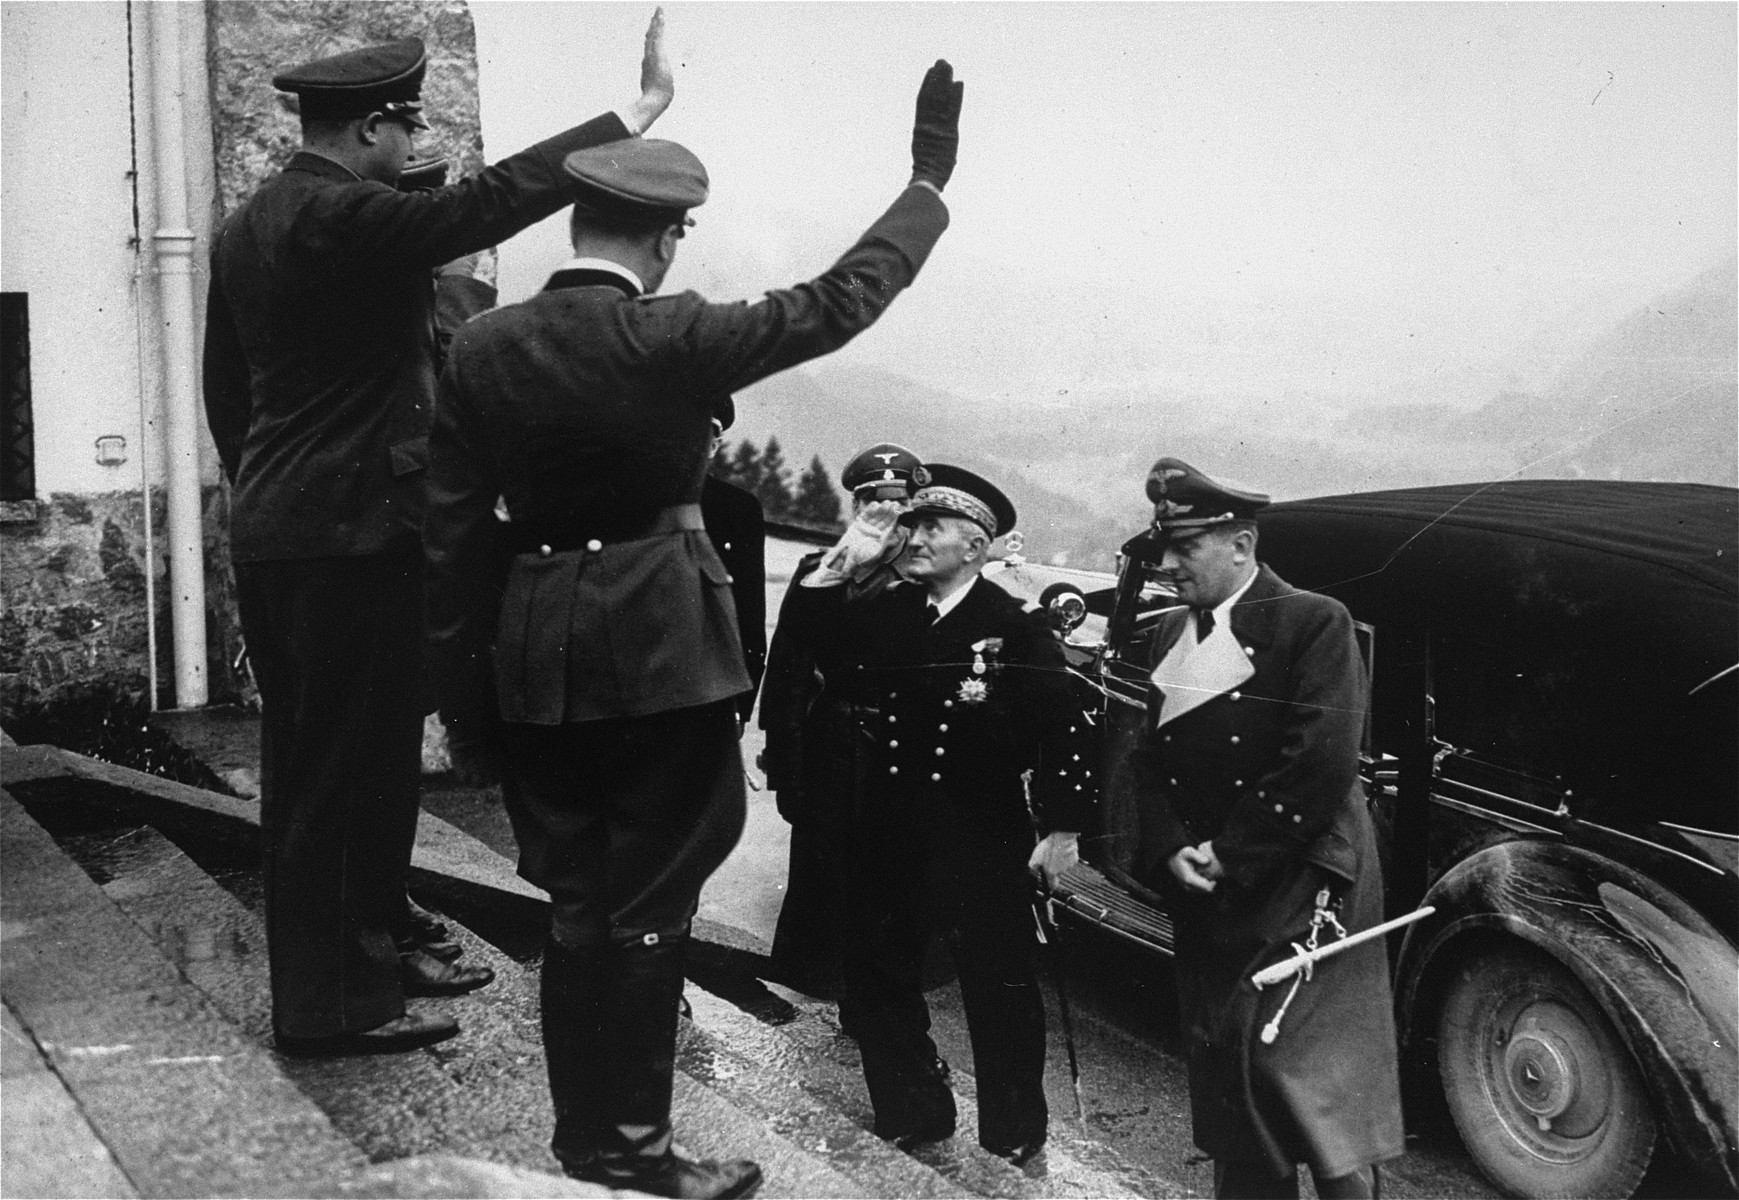 Adolf Hitler salutes Admiral Francois Darlan upon his arrival at the Berghof